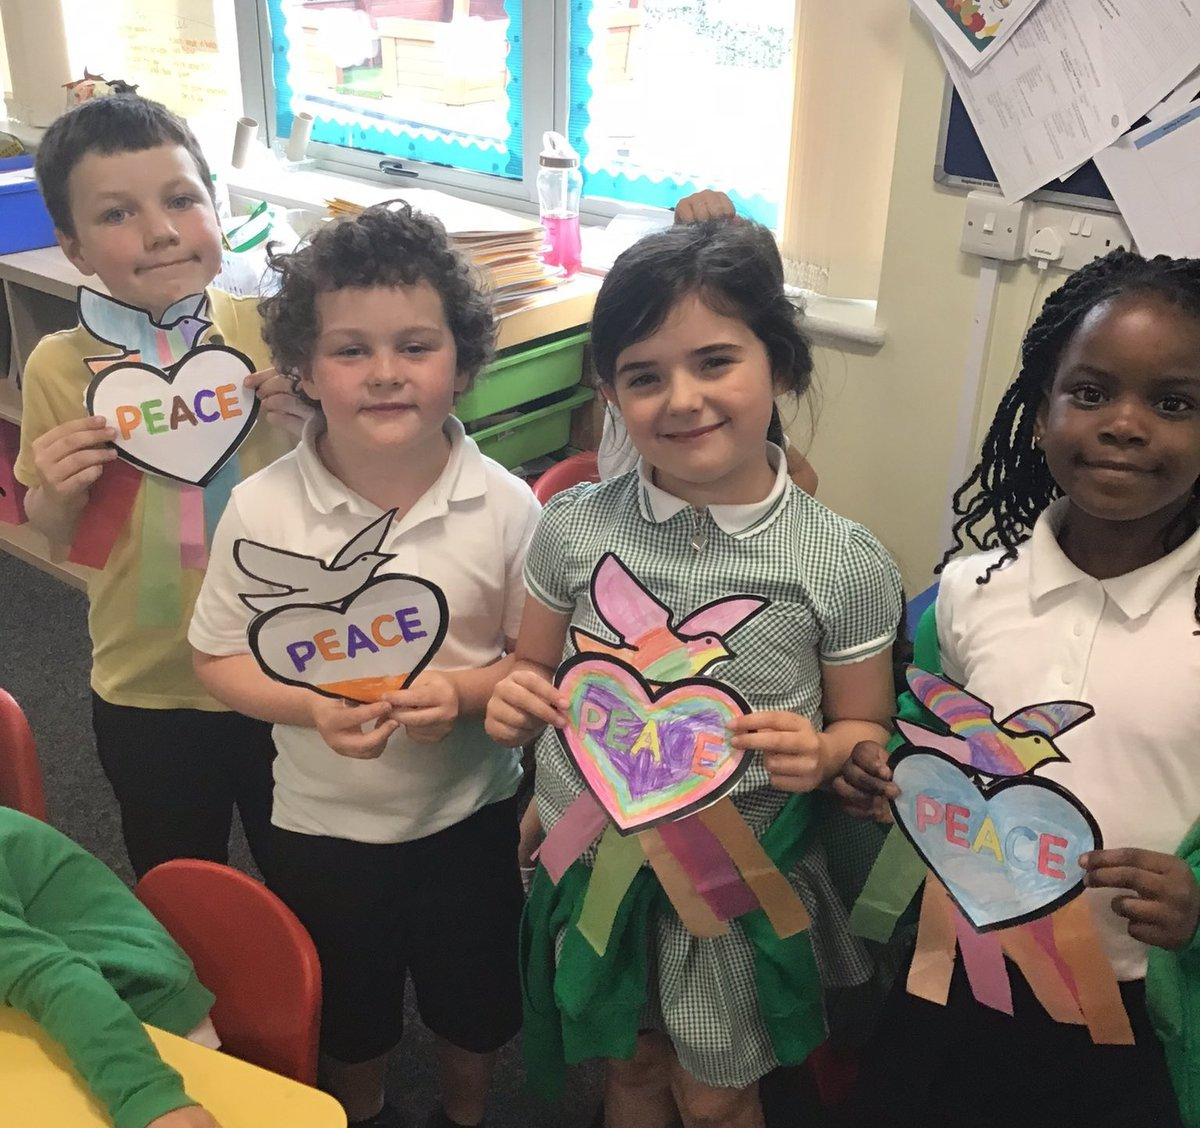 Four children holding doves with peace written on them